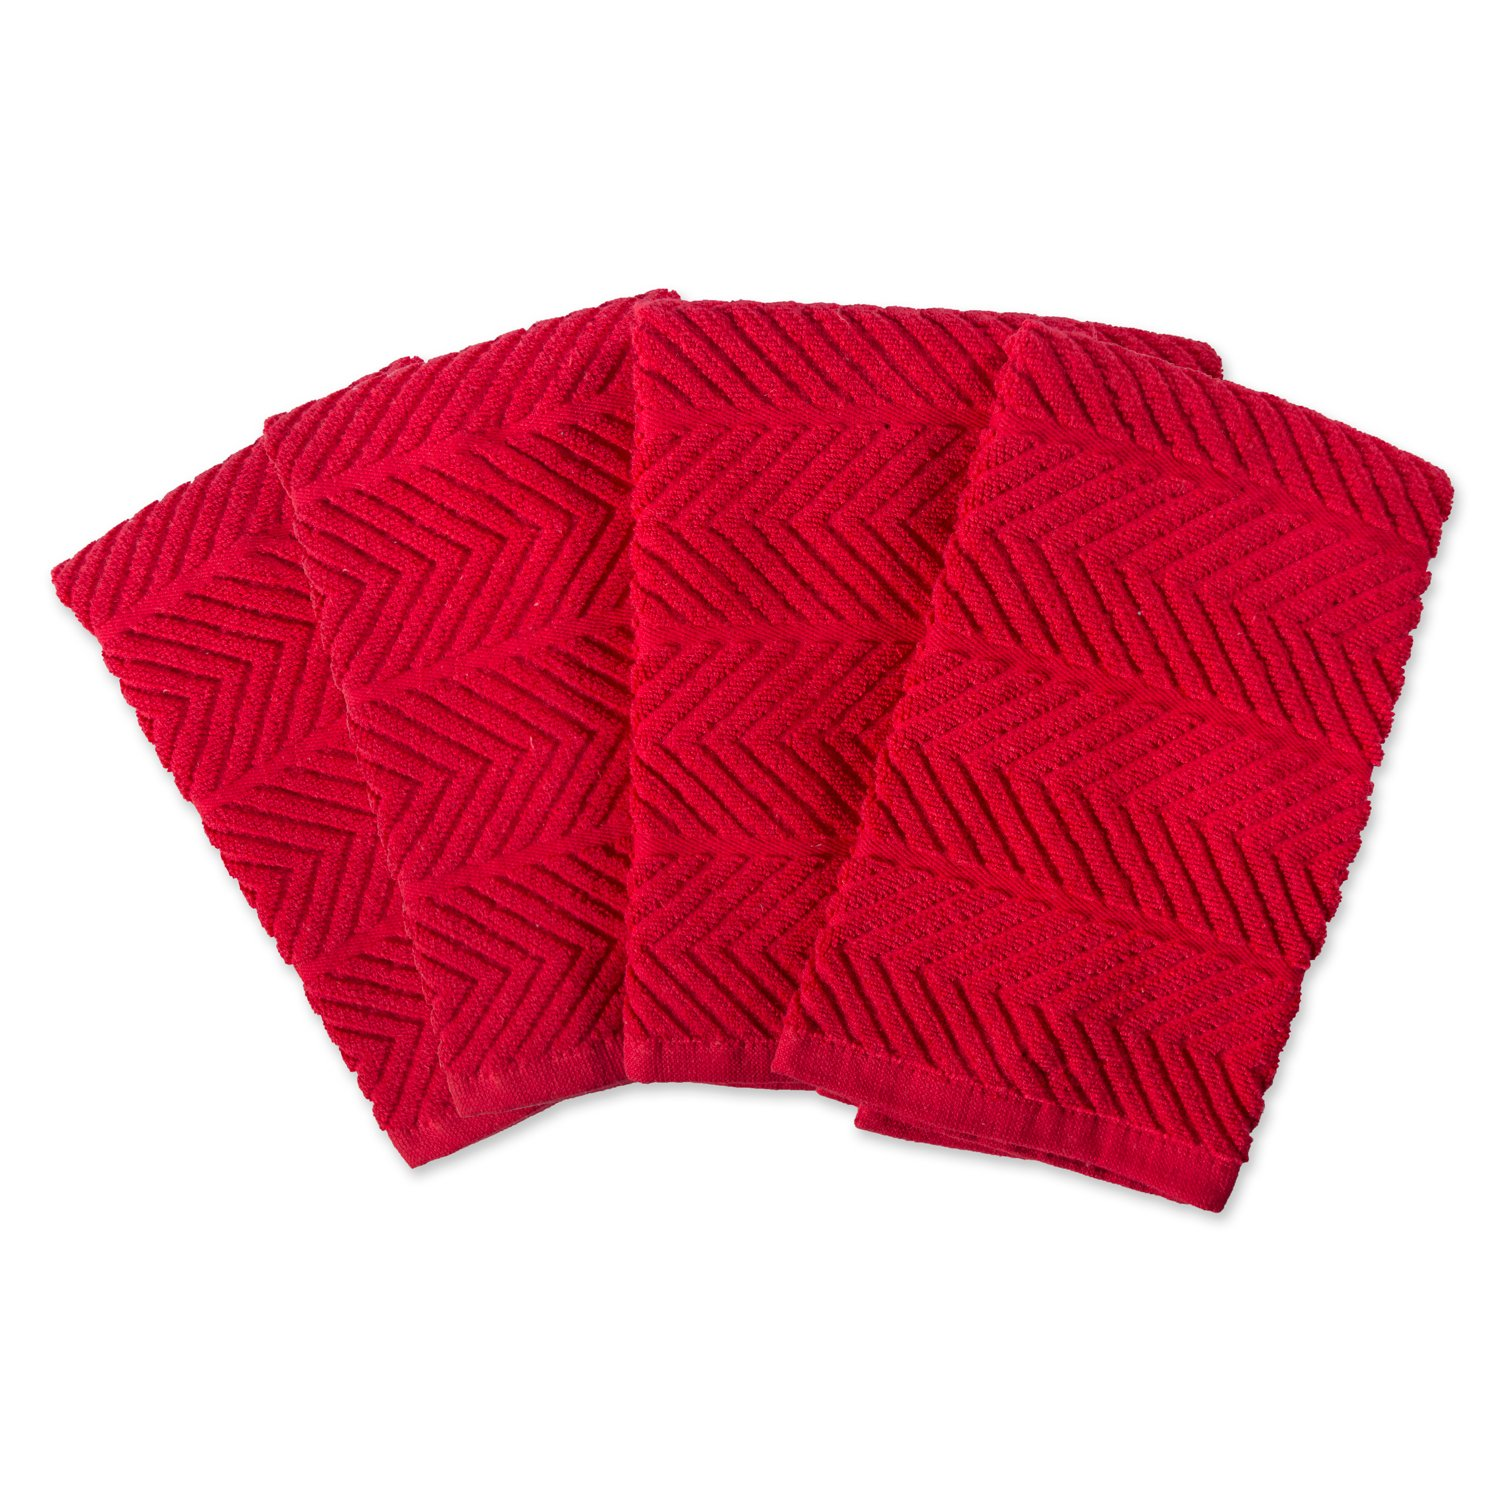 DII 100% Cotton Ultra-Absorbent Cleaning Drying Luxury Kitchen Chevron Bar Mop Dish Towels for Everyday Home Basic 16 x 19 Set of 4- Tango Red